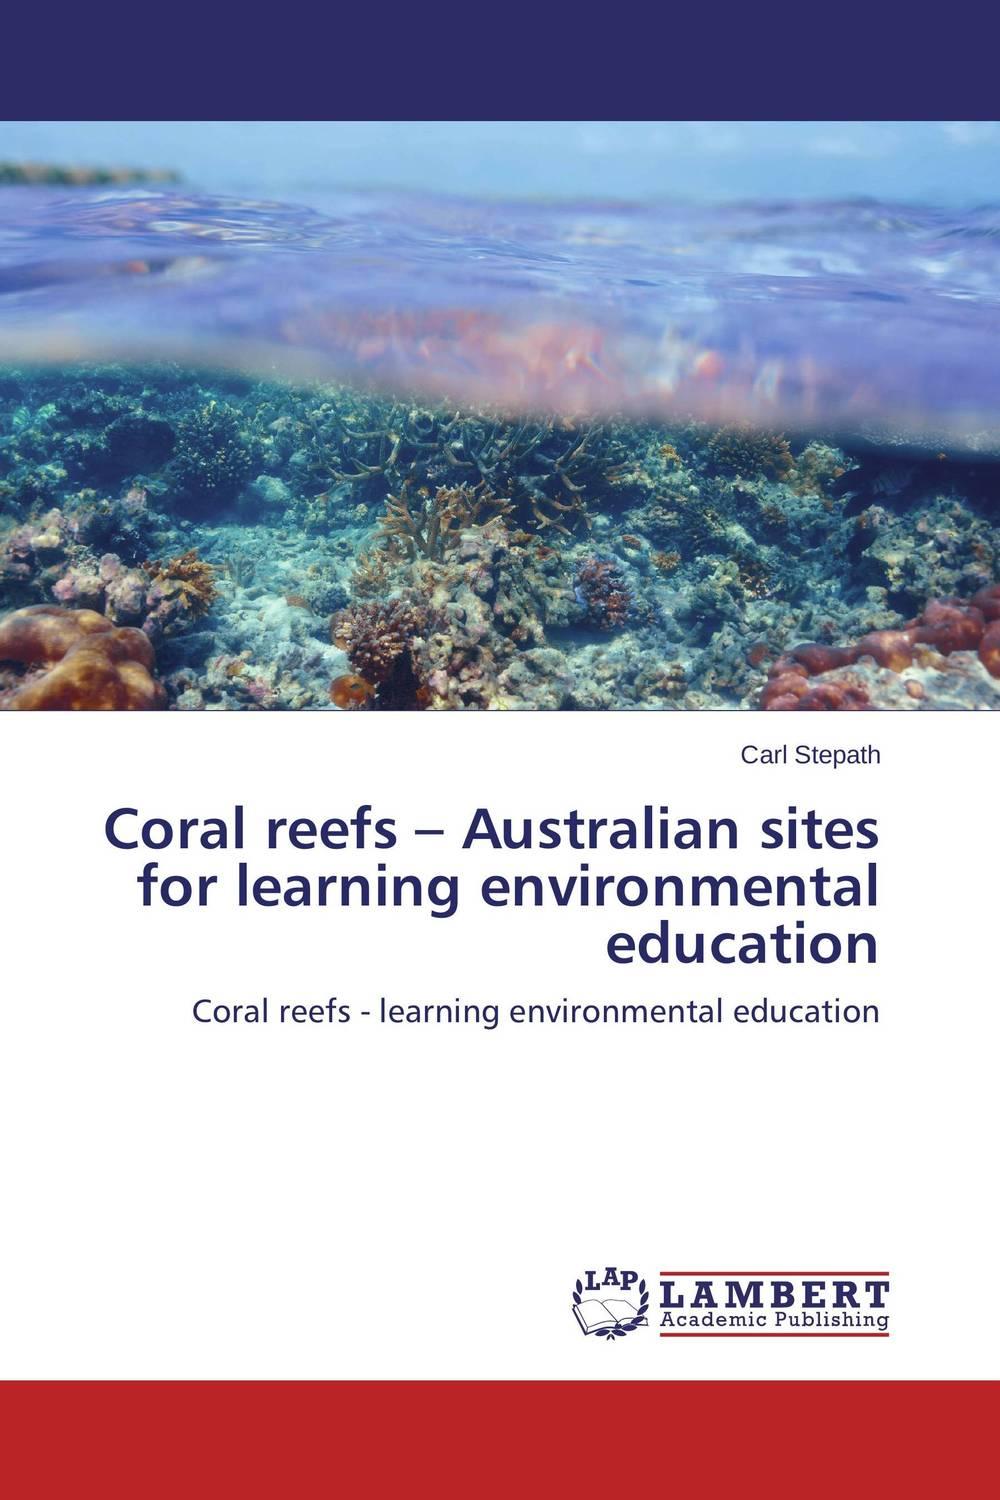 Coral reefs – Australian sites for learning environmental education